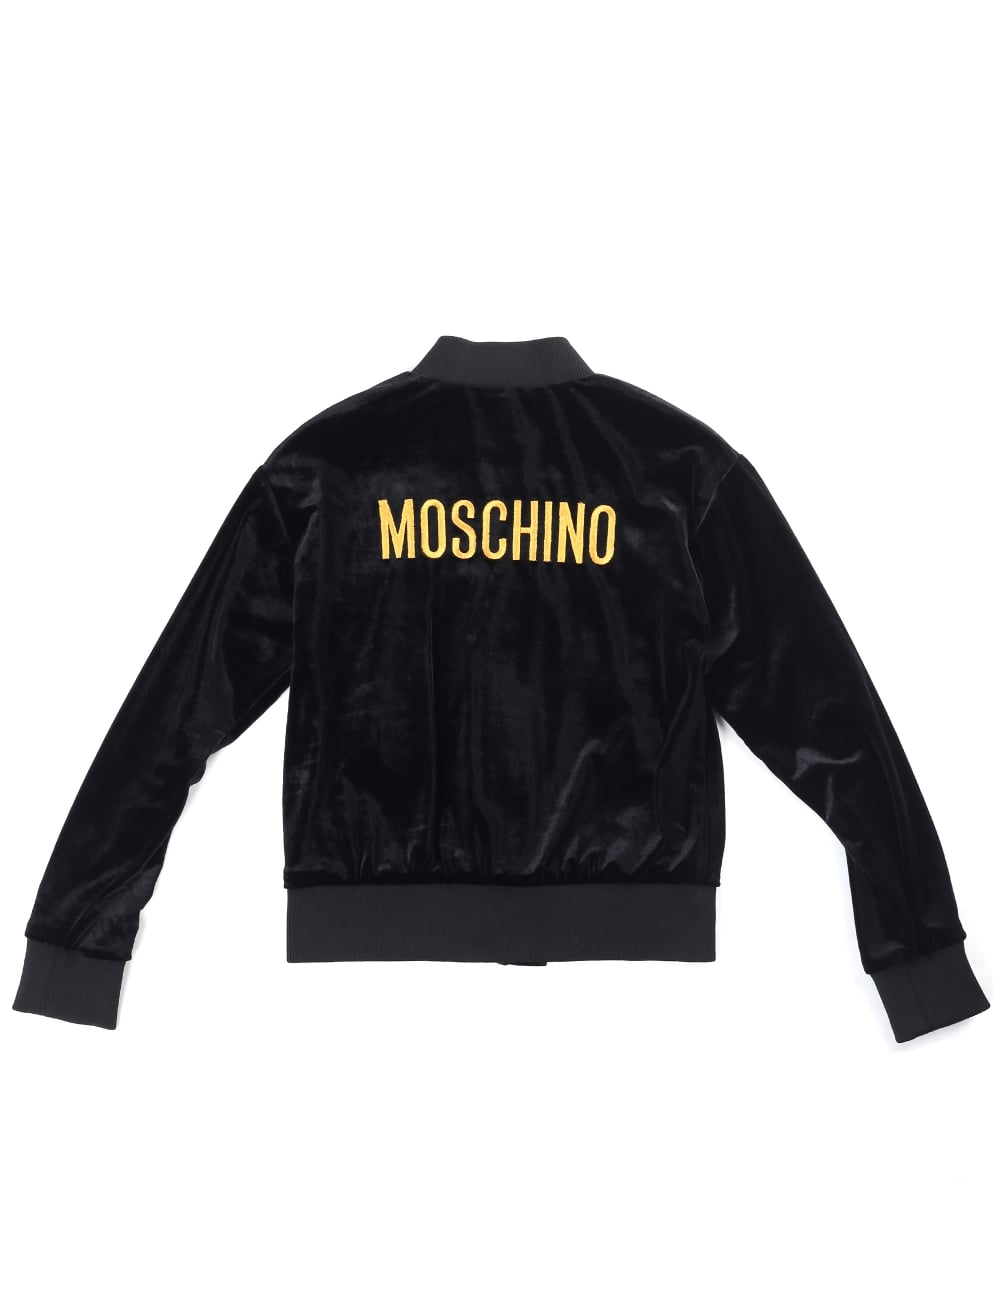 Moschino Young Girls Embroidered Bomber Jacket 159409399a16